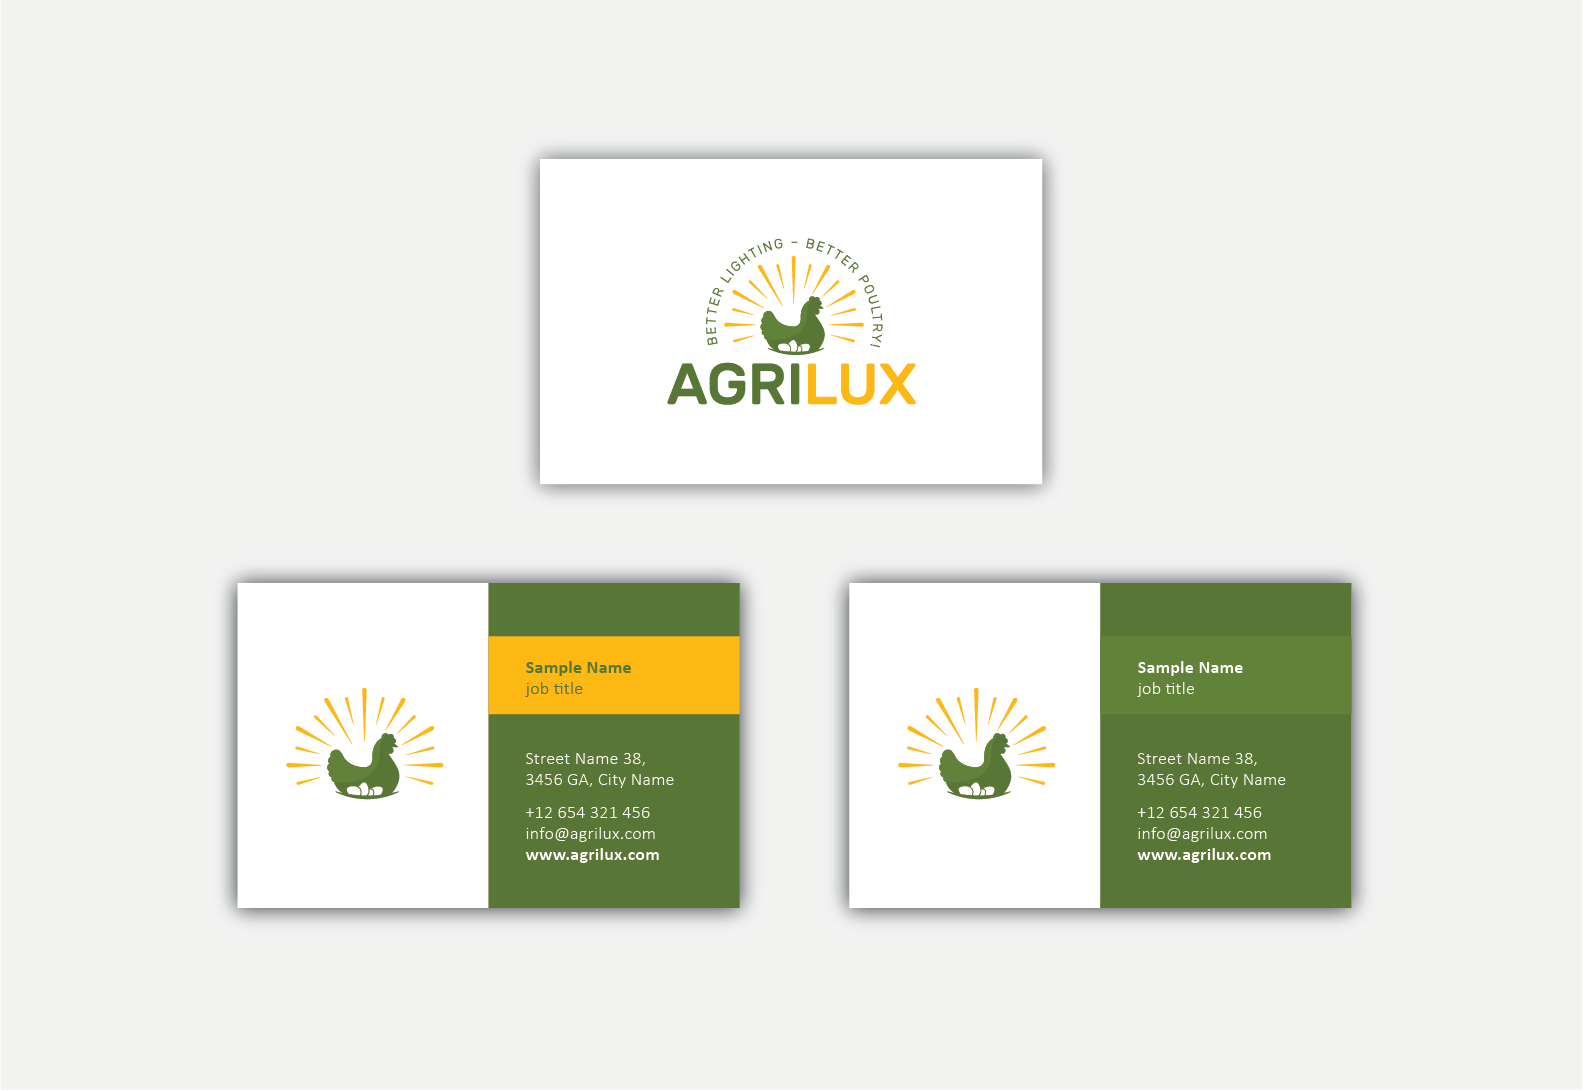 Design Agrilux logo to attract Poultry farmers who want to make more money